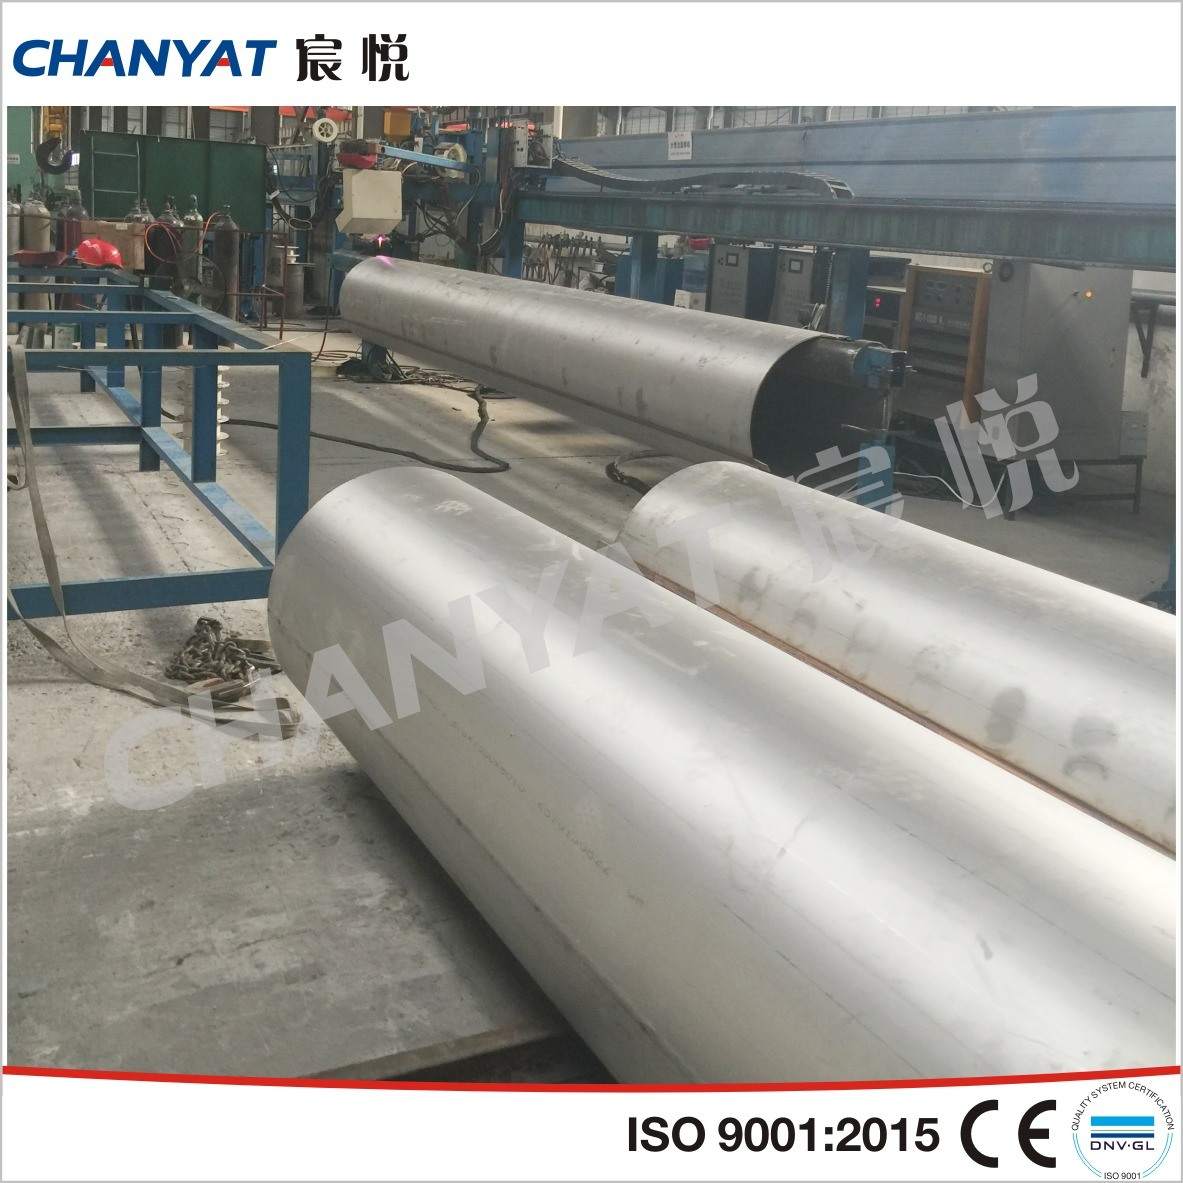 Stainless Steel Welded Pipe for Construction